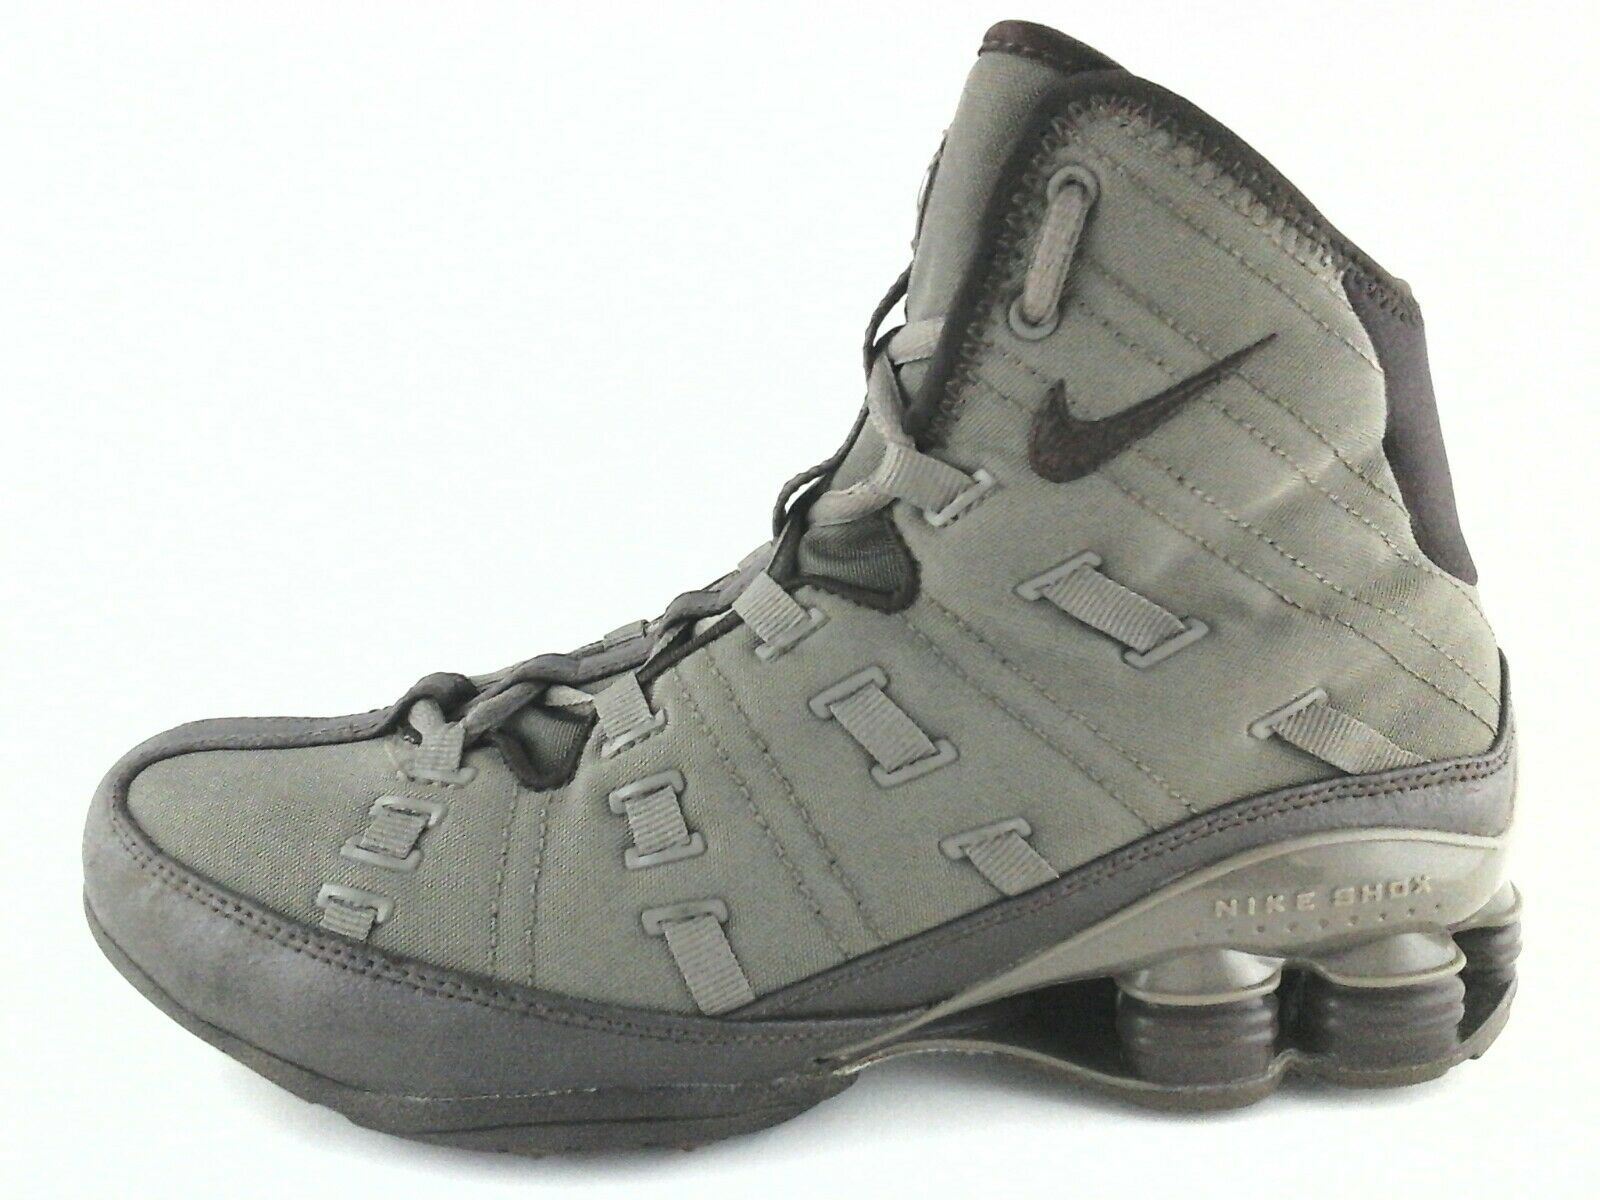 NIKE SHOX Shoes 06' High Top Sneakers Olive Green 313740 Women's US 8 WOW Seasonal price cuts, discount benefits